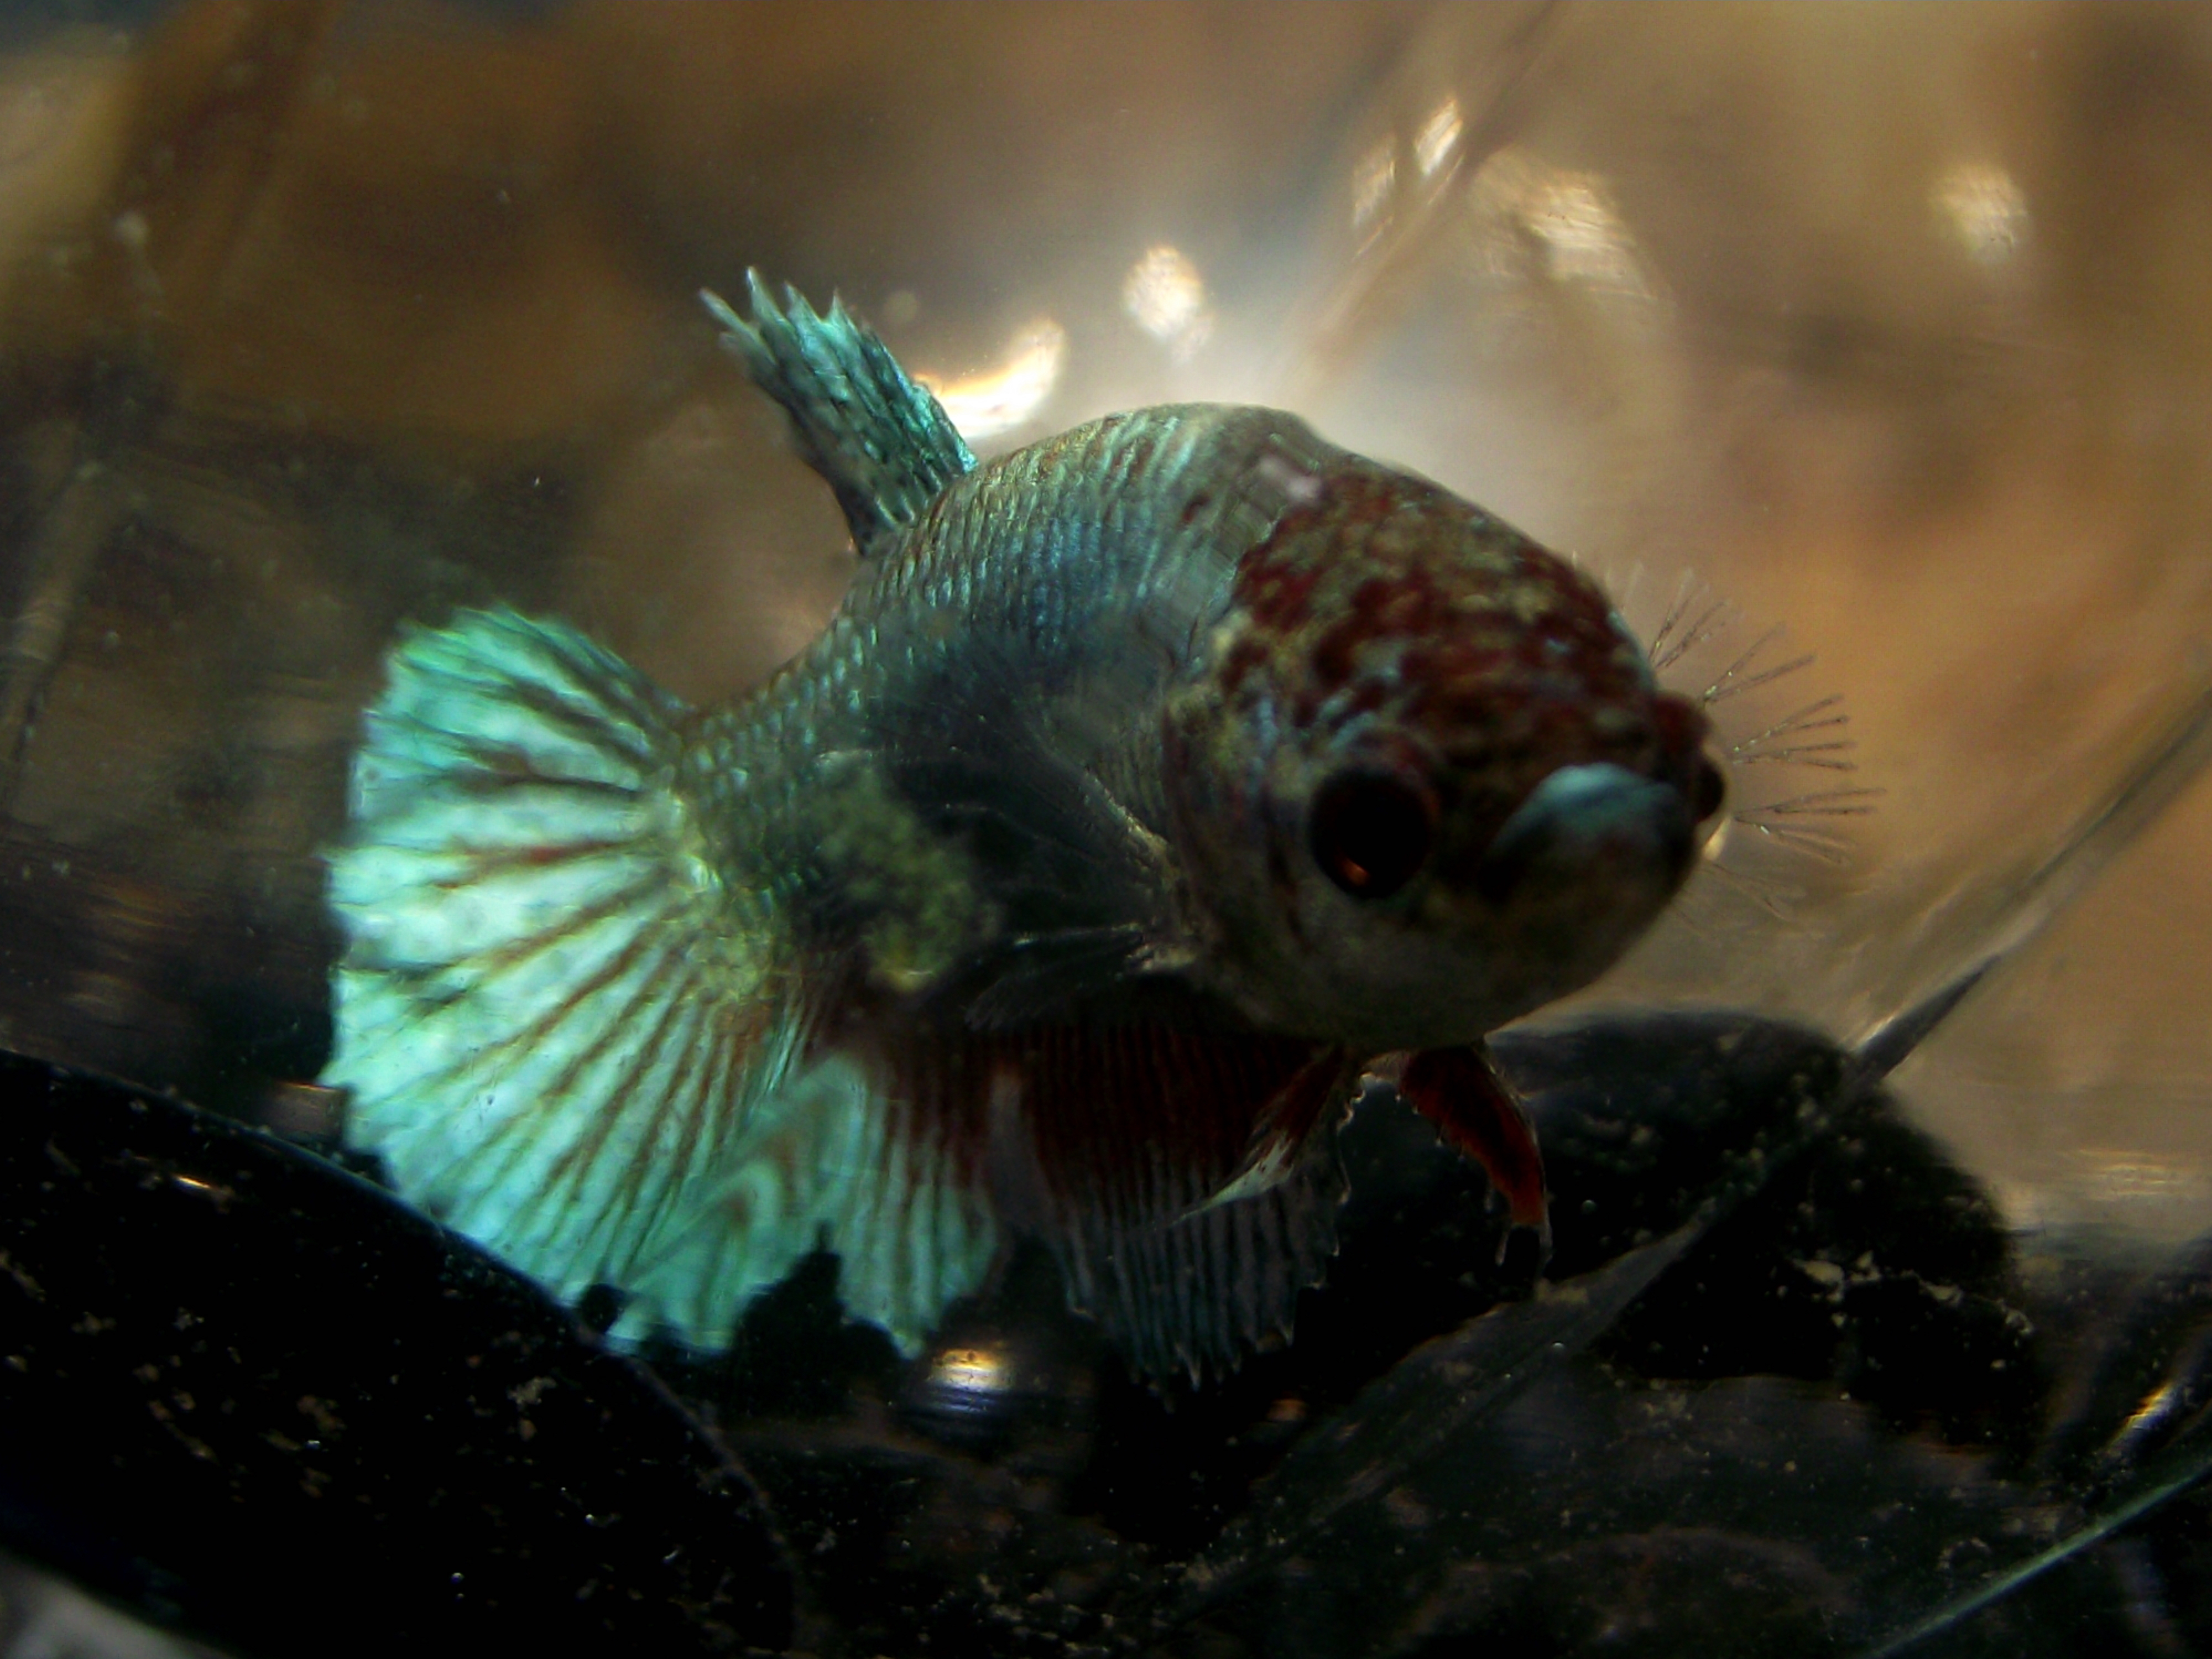 cichlids.com: female dragon plakat betta